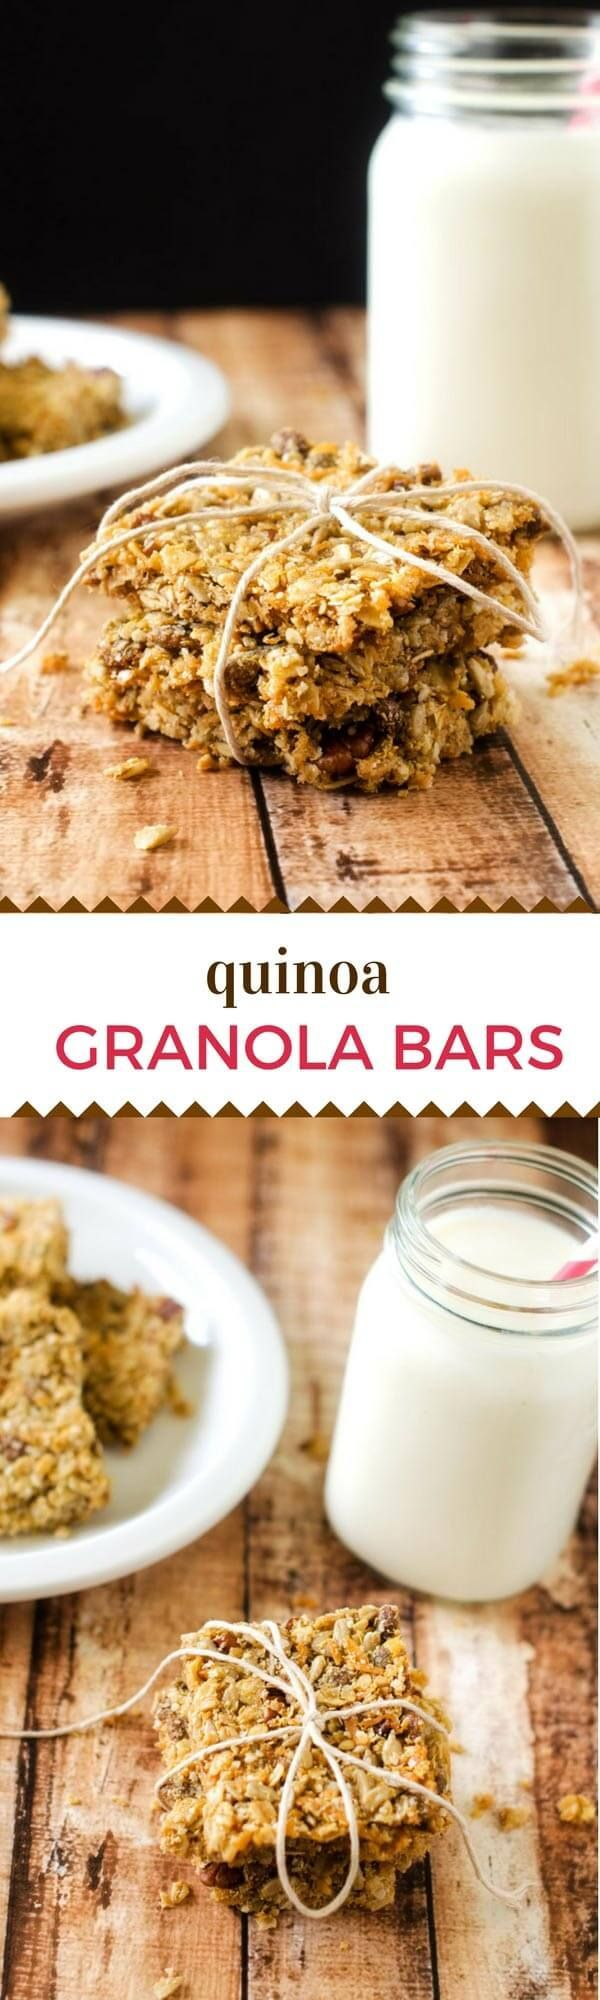 These Quinoa Granola Bars make a delicious, healthy snack that you can feel good about serving your family! #glutenfree #vegan via @wendypolisi